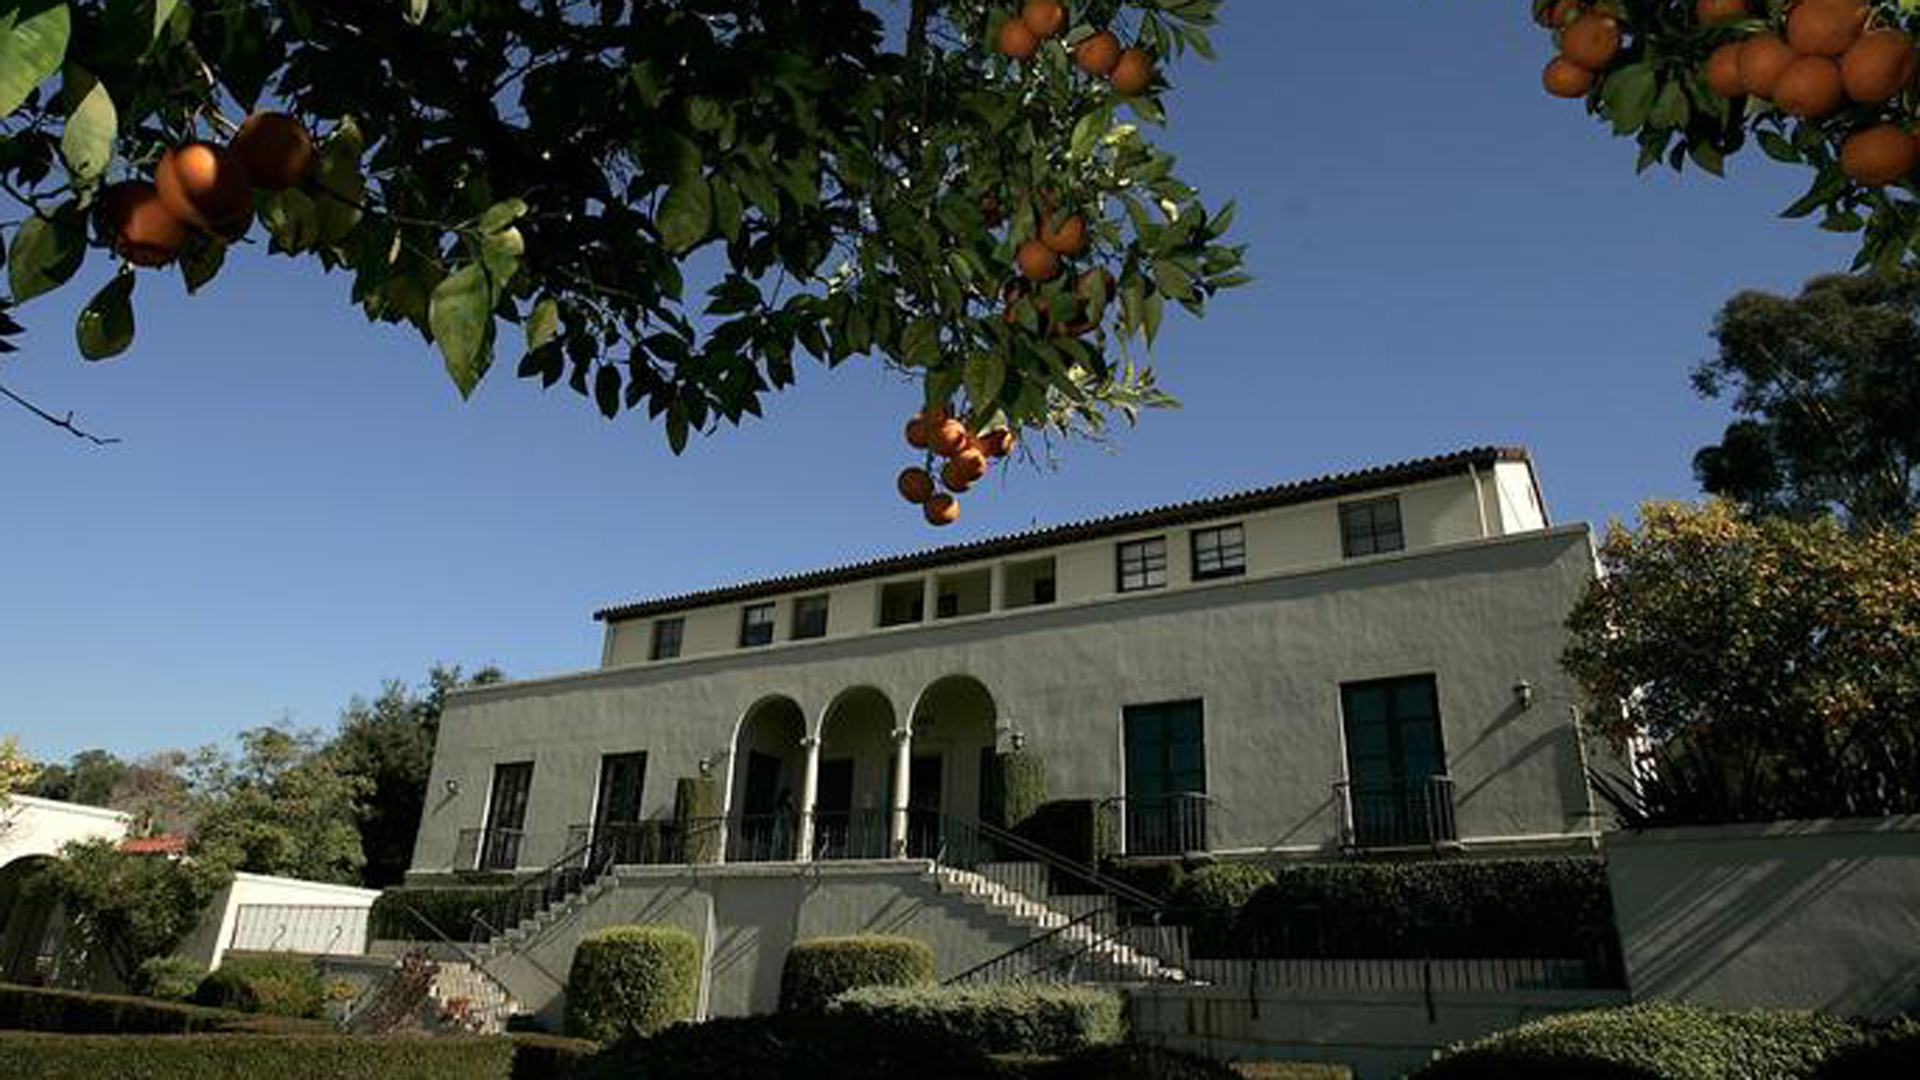 The OccThe Occidental College campus is shown in this undated photo. (Brian van der Brug / Los Angeles Times)idental College campus. (Brian van der Brug / Los Angeles Times)